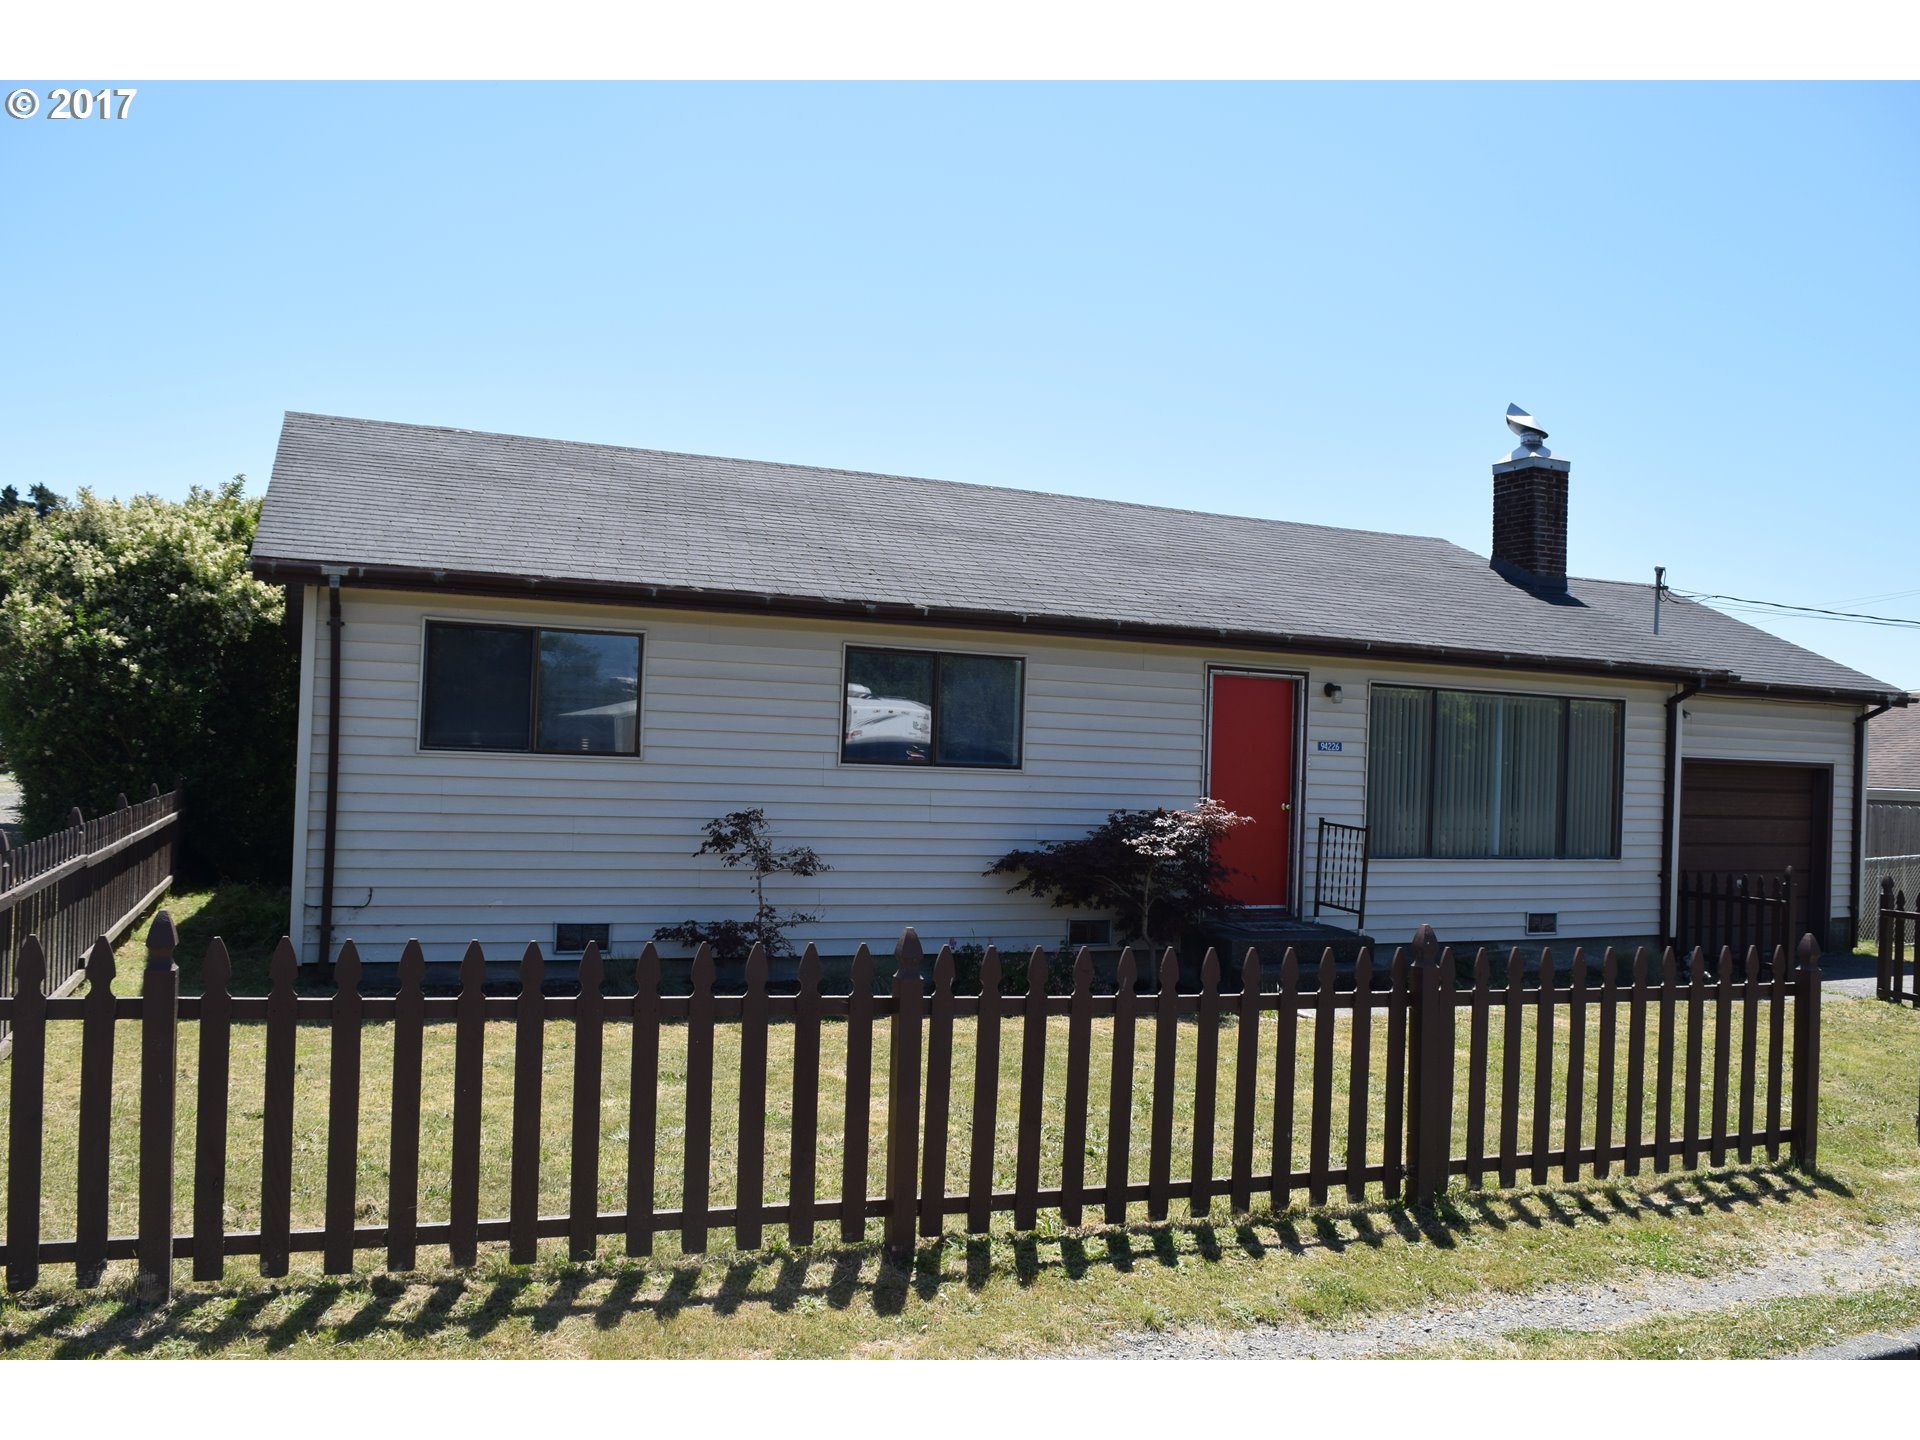 94226 SIXTH ST Gold Beach, Brookings Home Listings - Pacific Coastal Real Estate